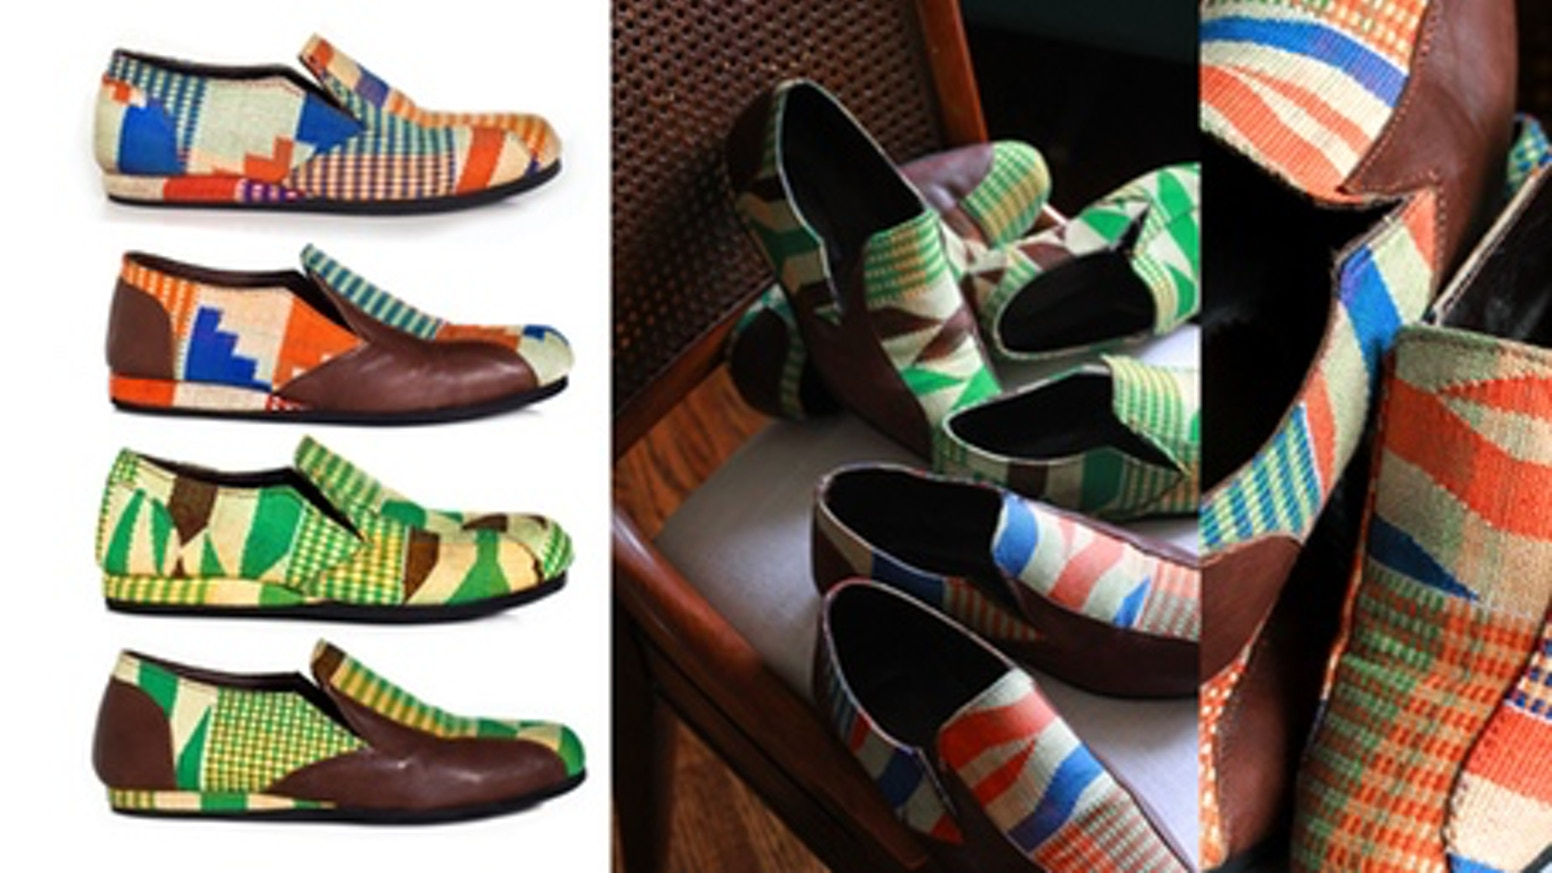 5c88b11593126 Kwame Baah | Exquisite Handcrafted footwear from Ghana by George ...